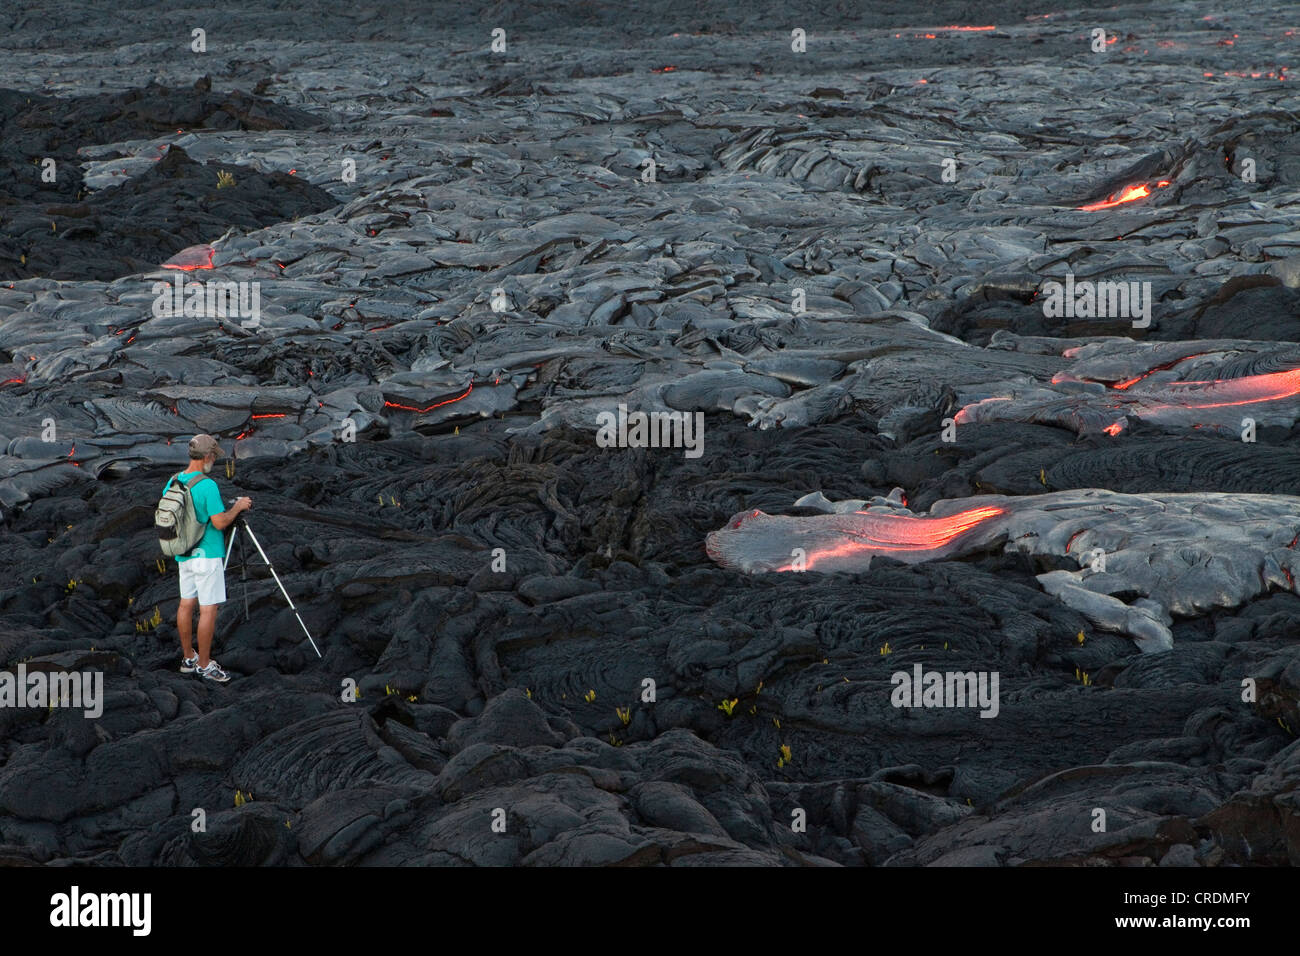 Photographer taking pictures of low viscosity lava, Pāhoehoe lava, flowing from rifts in the East Rift - Stock Image